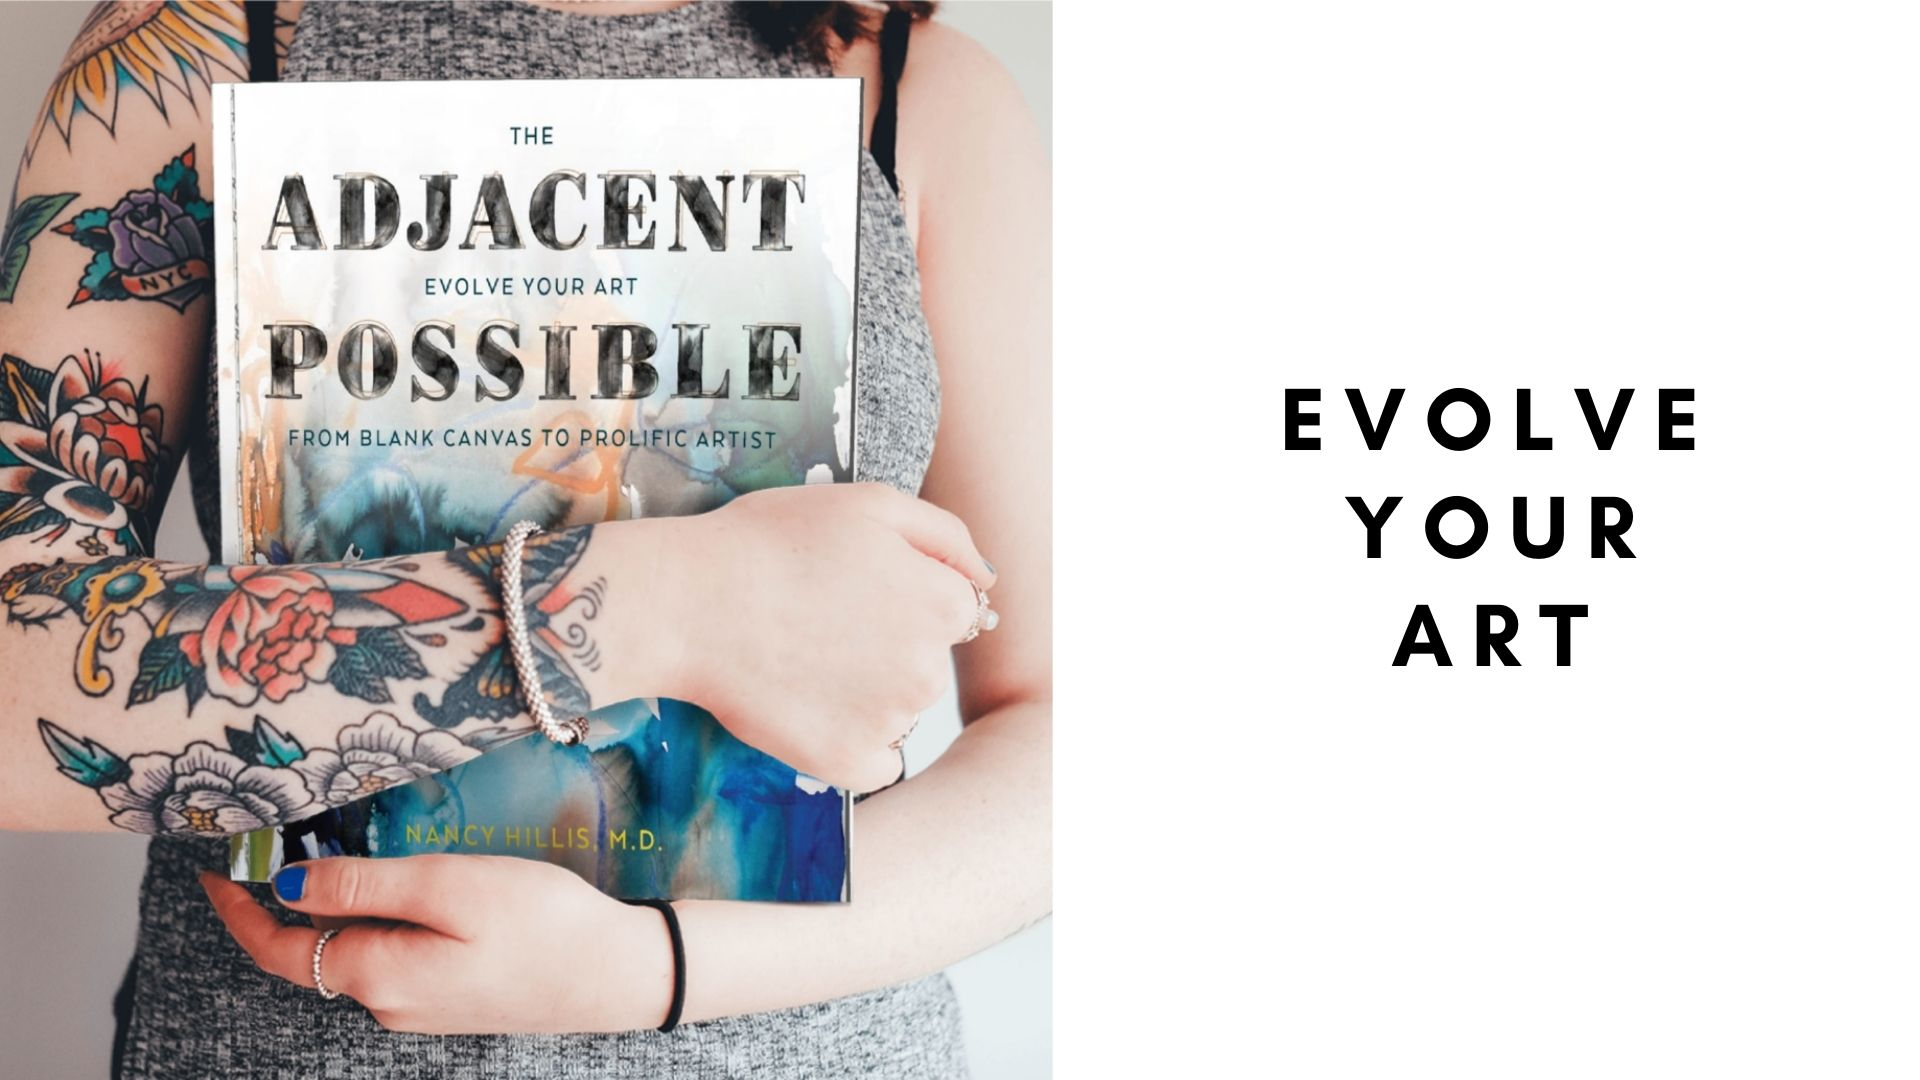 The Adjacent Possible Book Release1